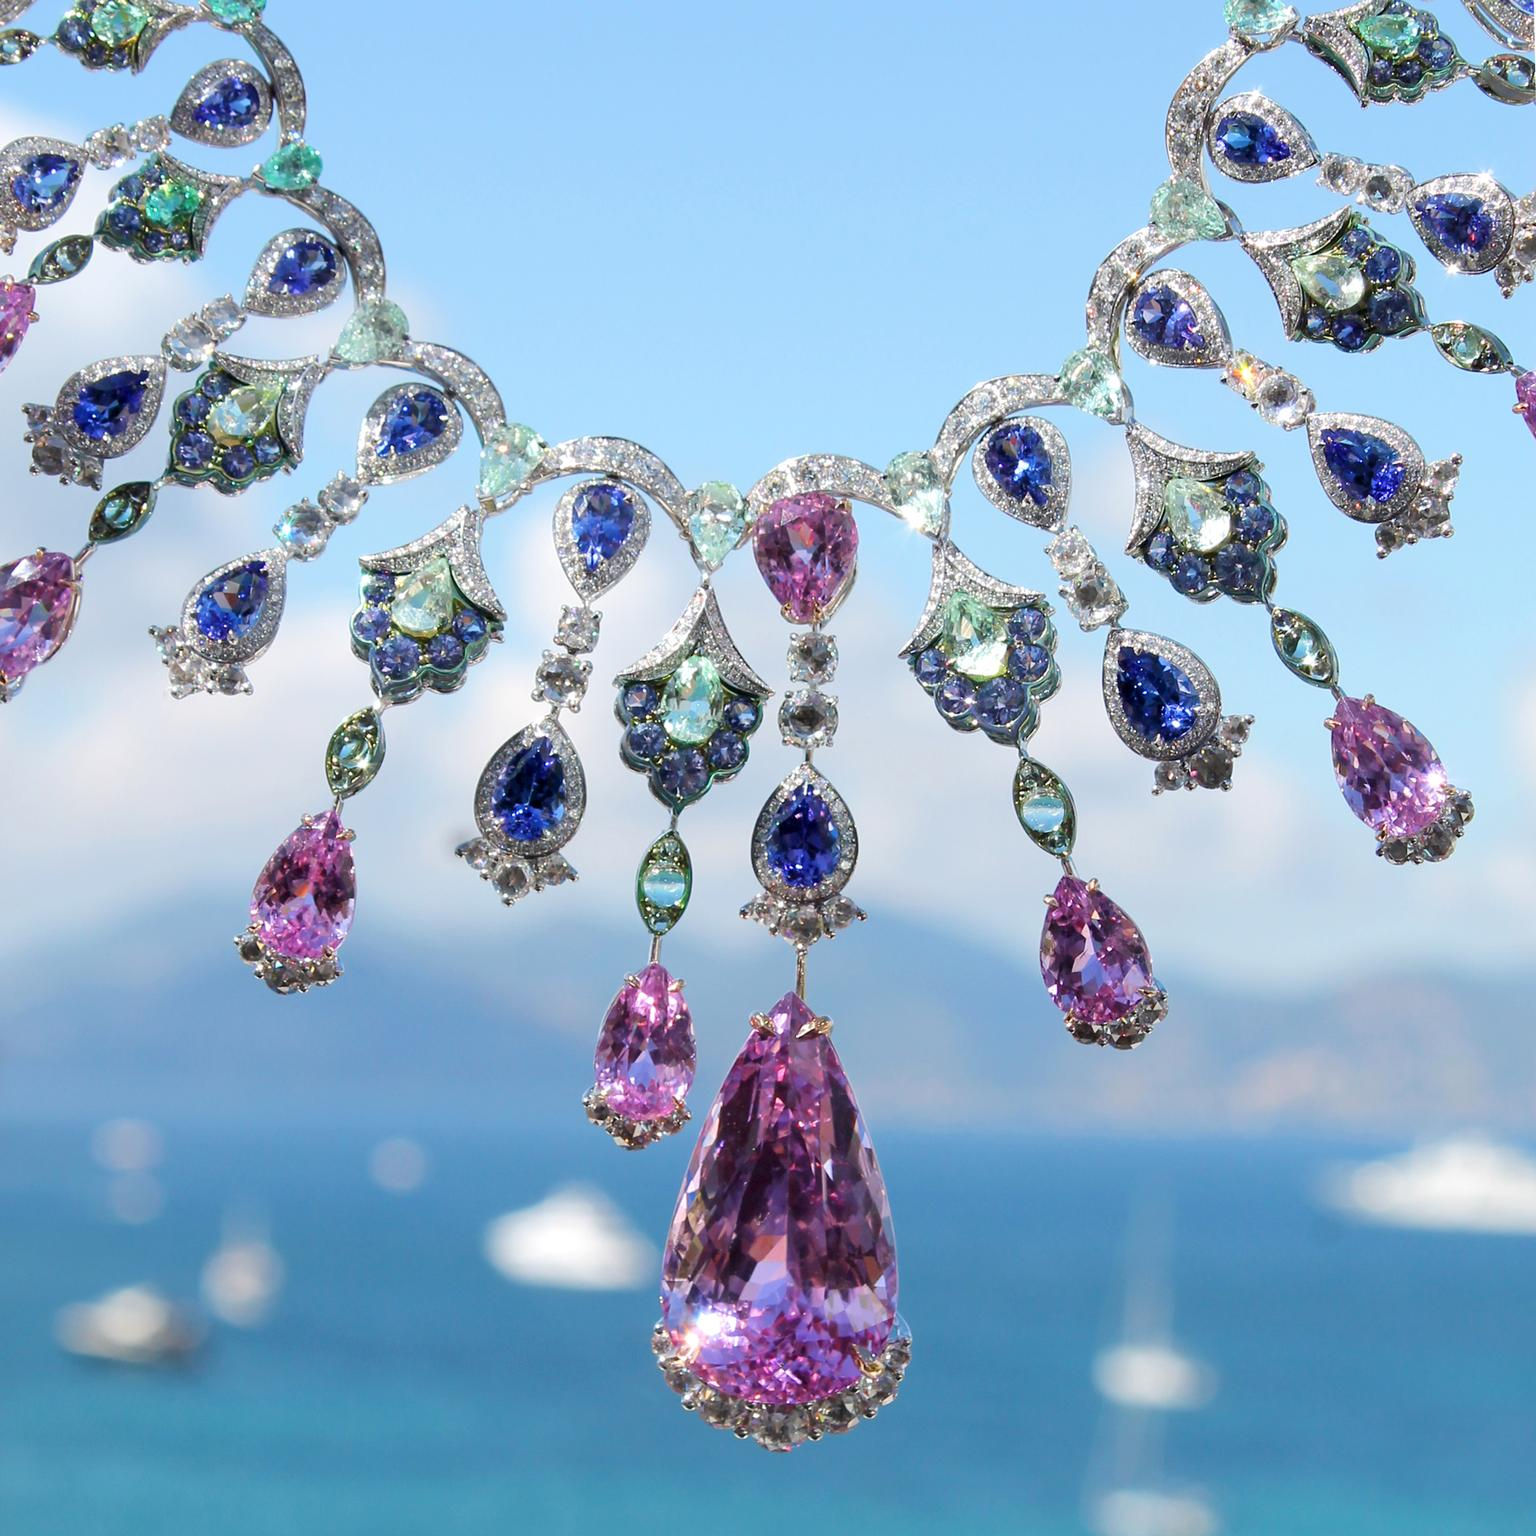 Chopard kunzite necklace